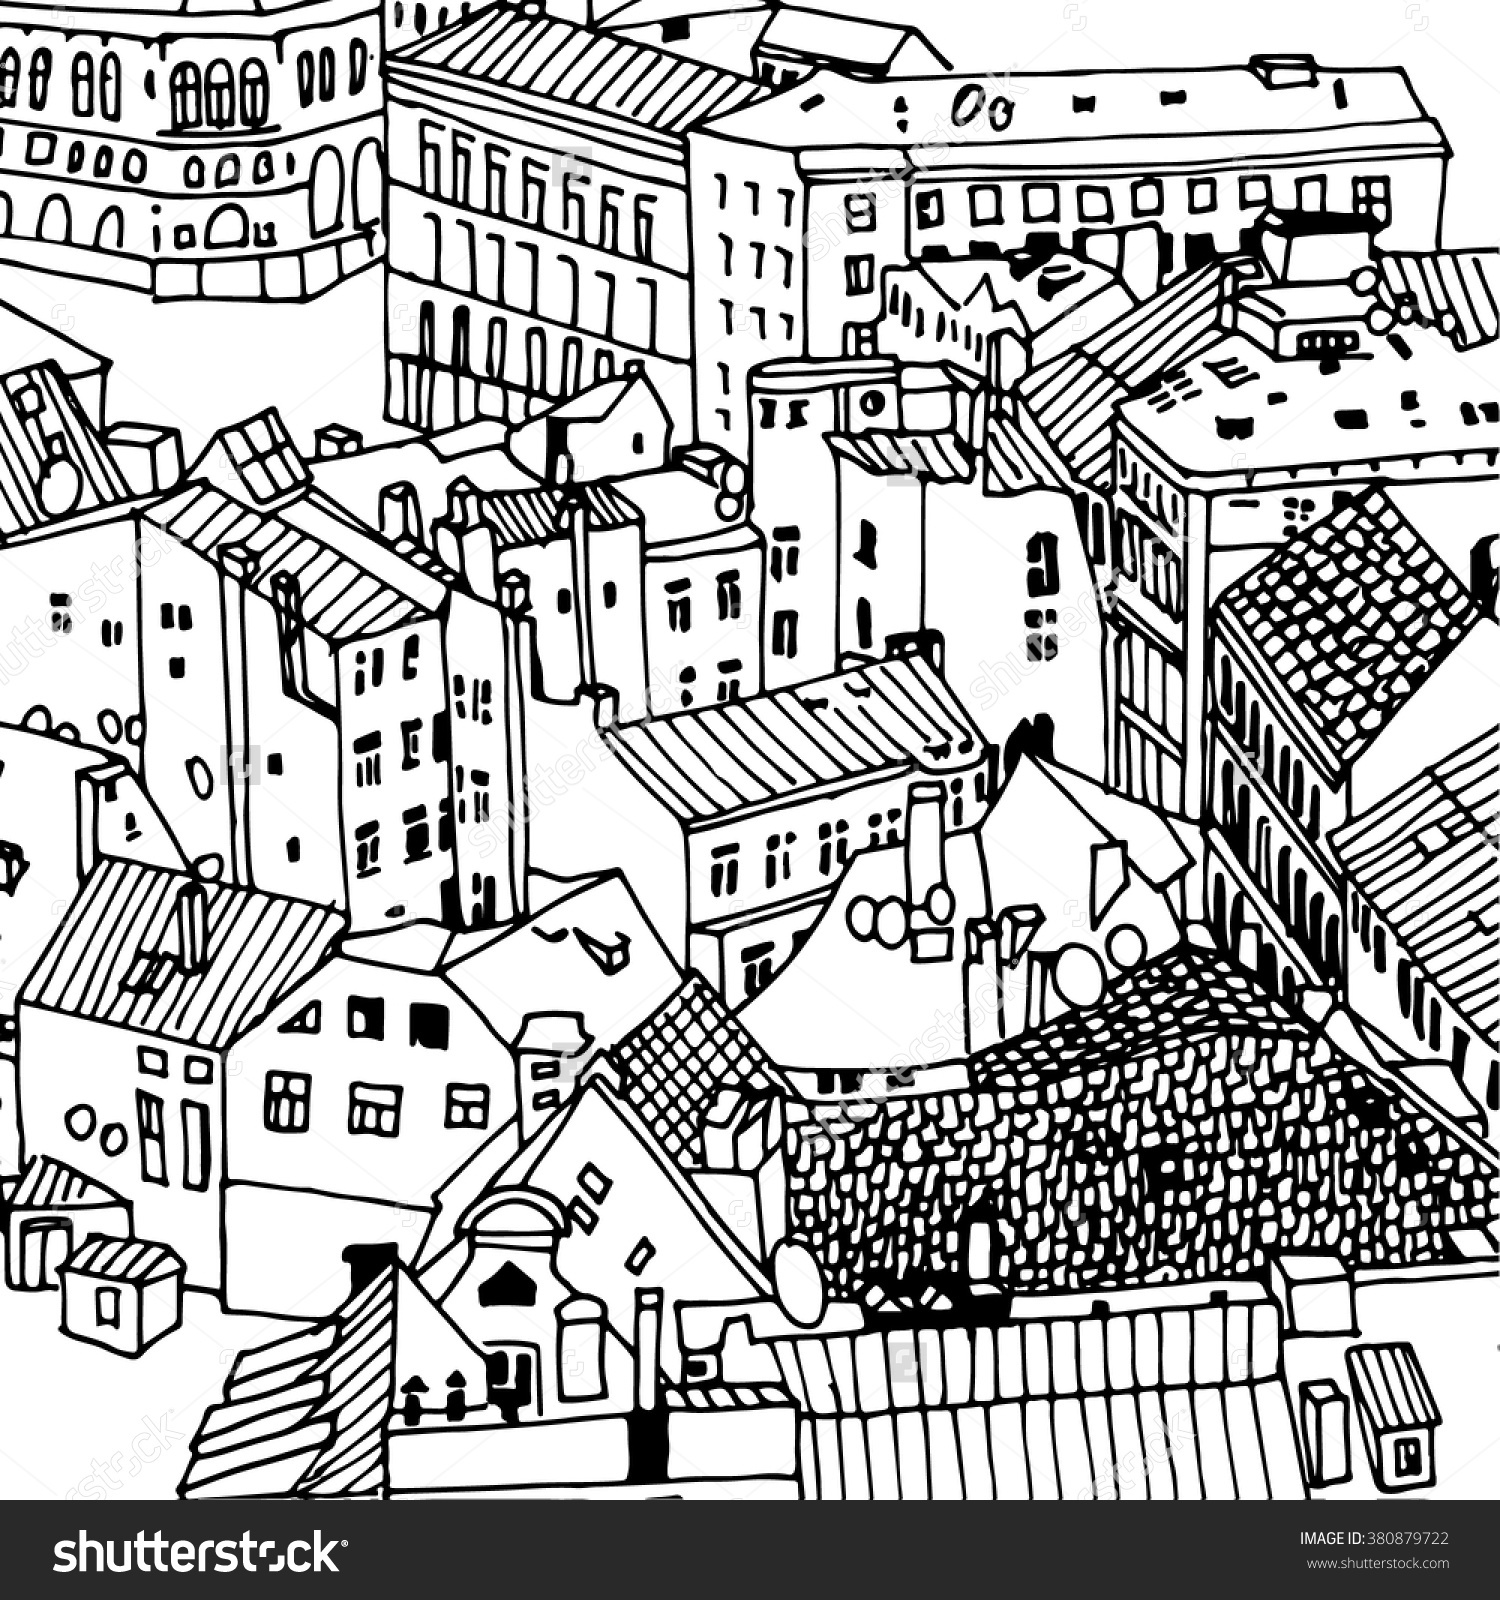 1500x1600 Sketch Drawing Urban Landscape Cityscape Rooftops And The Save